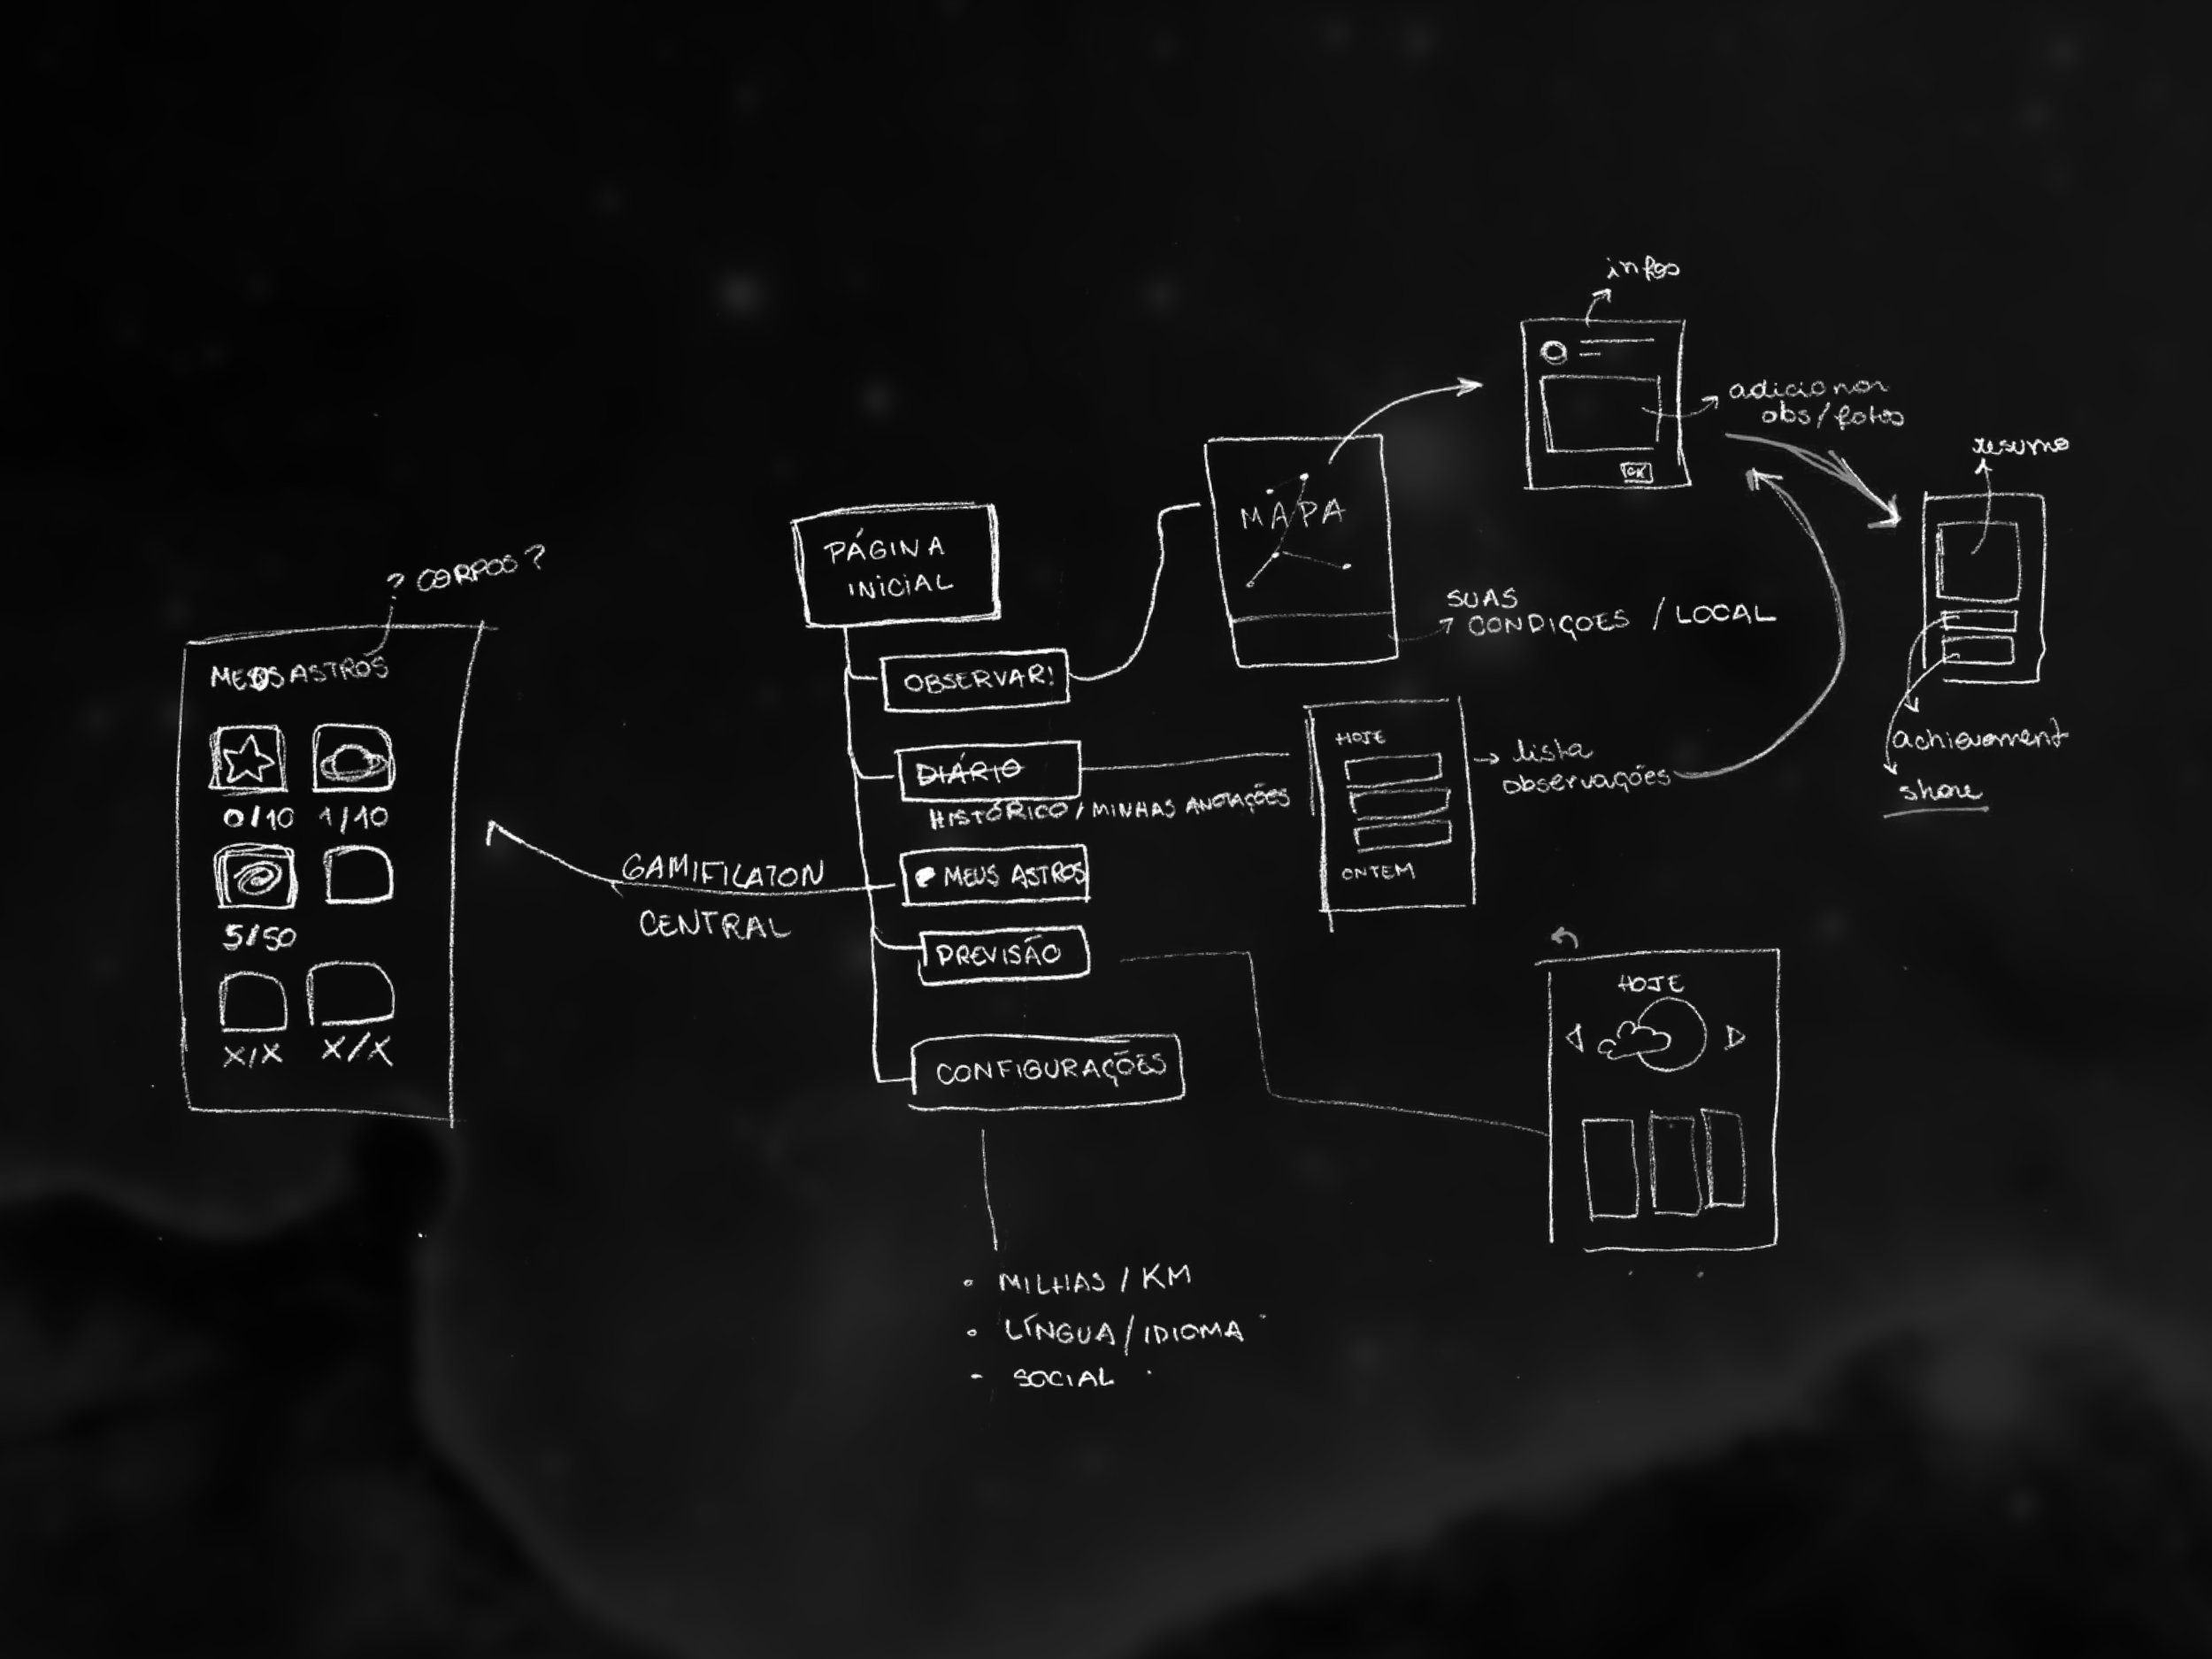 First sketch iteration on the navigation